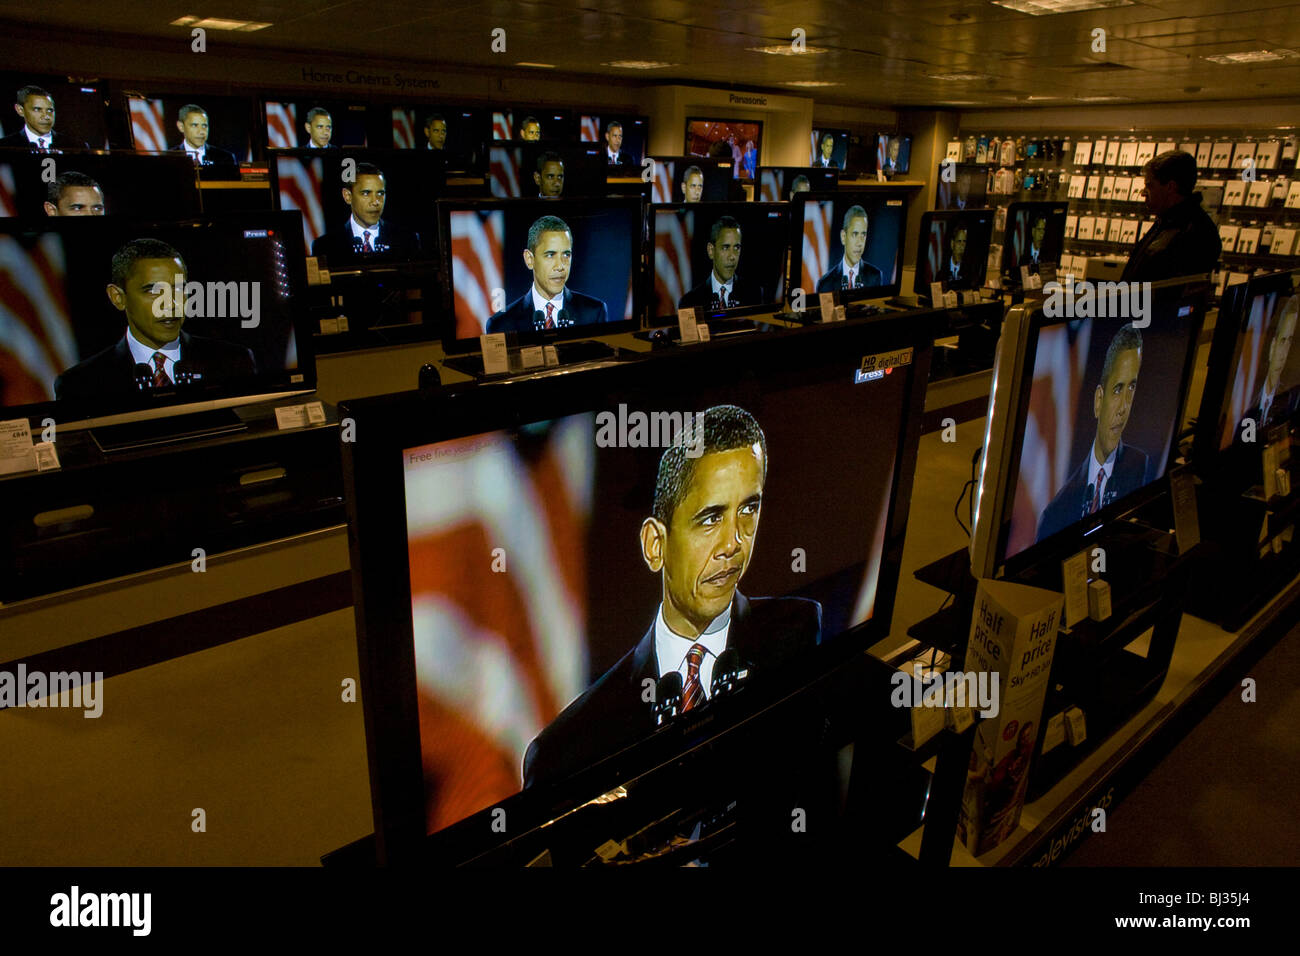 Barack Obama gives election victory speech on BBC News TV screens on audio floor of John Lewis department store - Stock Image